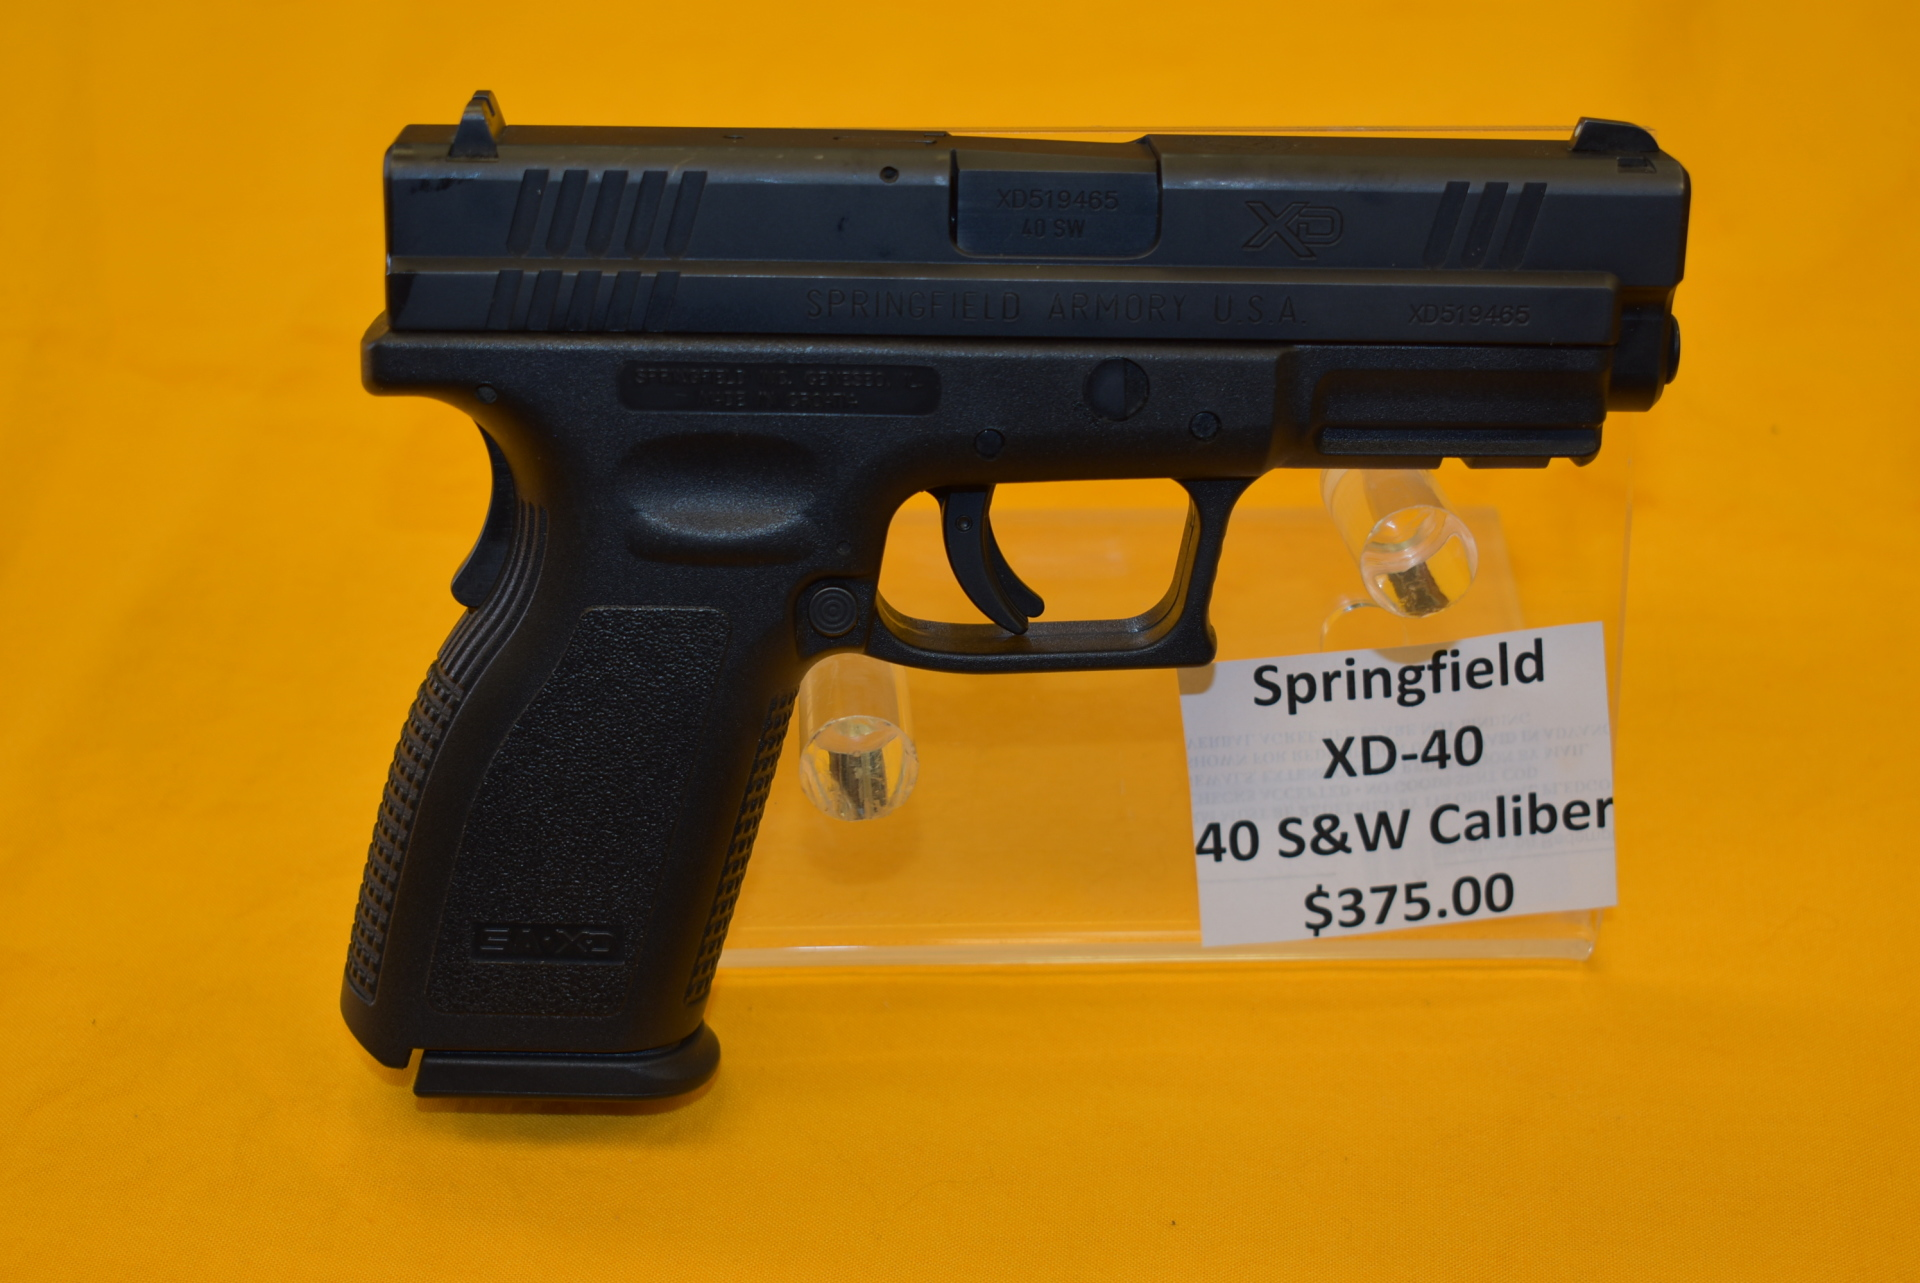 Springfied XD 40 40 S&W caliber